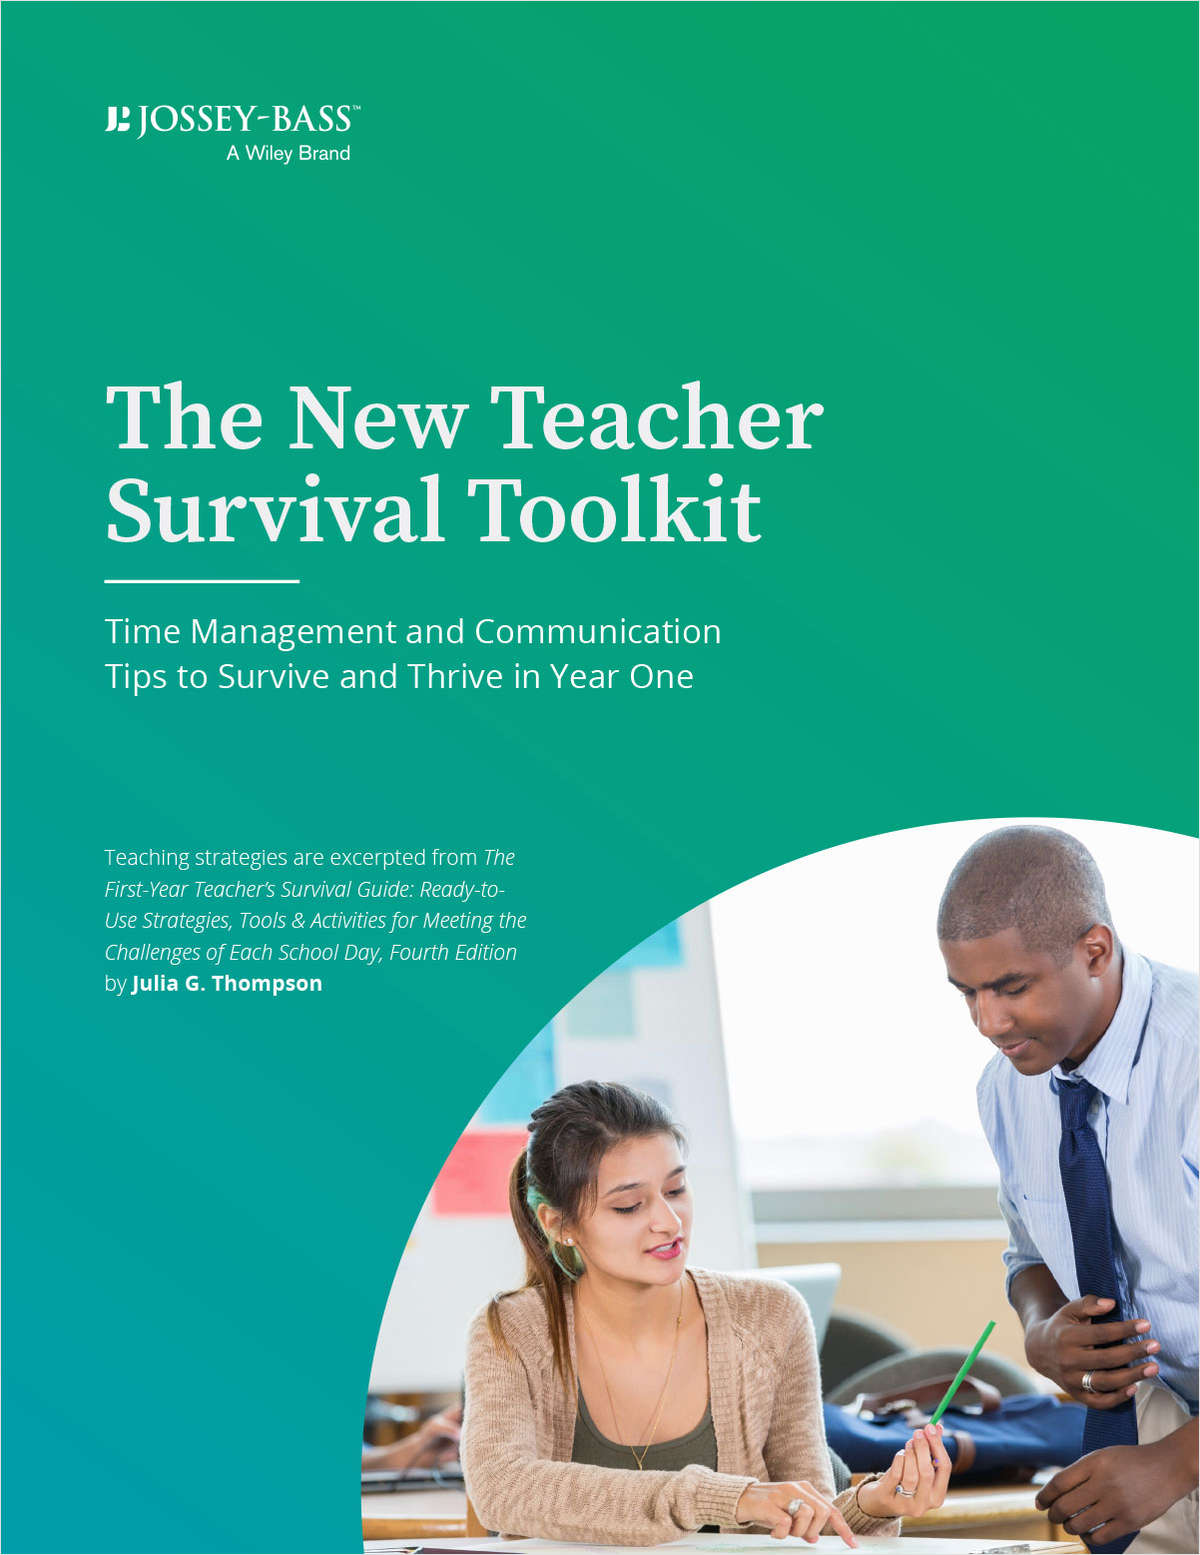 The New Teacher Survival Toolkit: Time Management and Communication Tips to Survive and Thrive